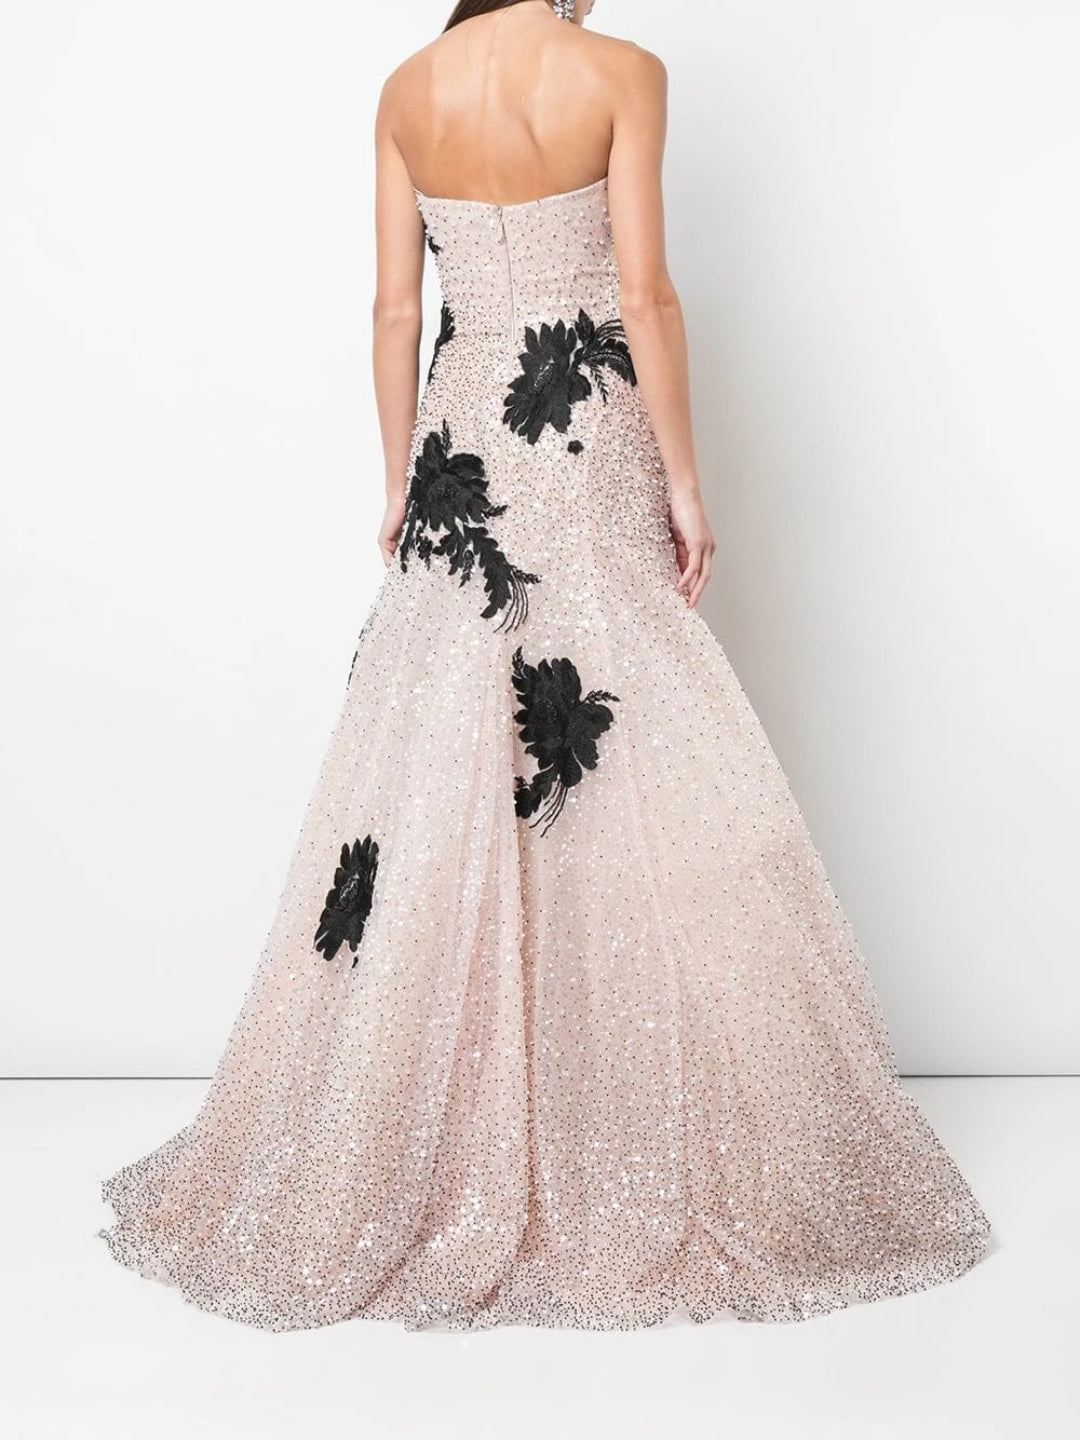 Blush Tulle Gown With Black And With White Applique